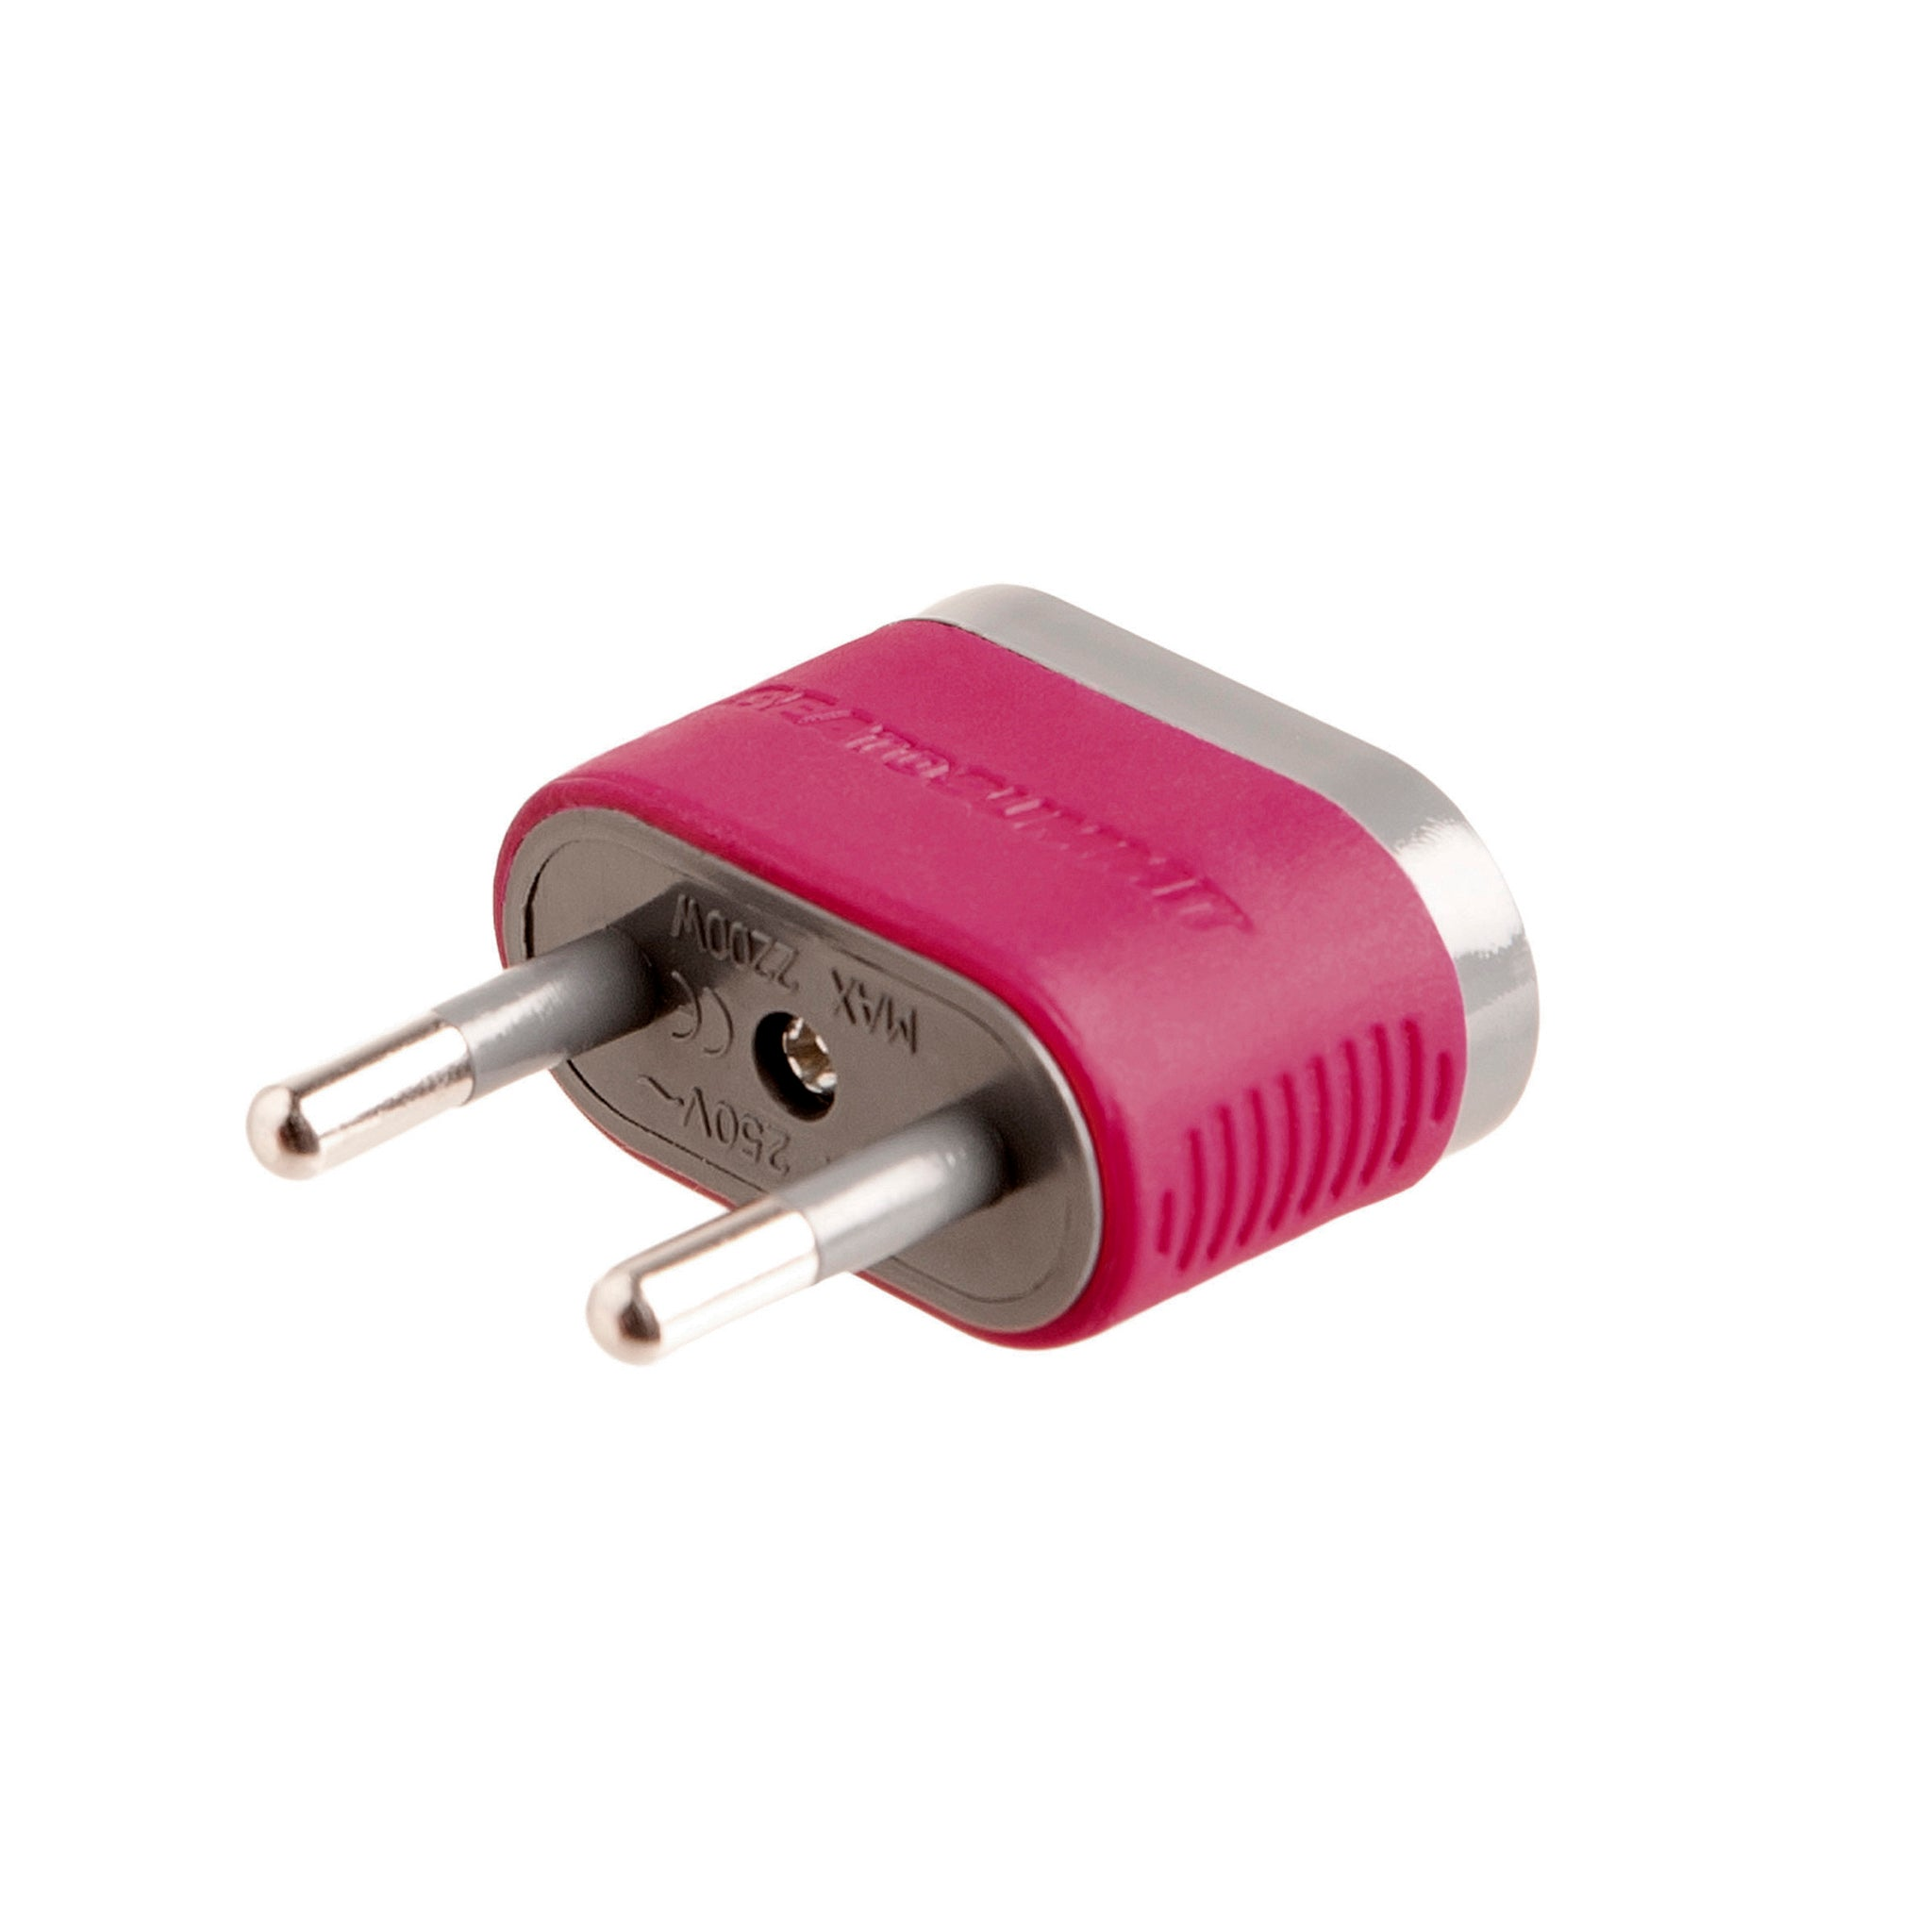 Travelling Light Travel Adapter _ plug converter _ Europe EU